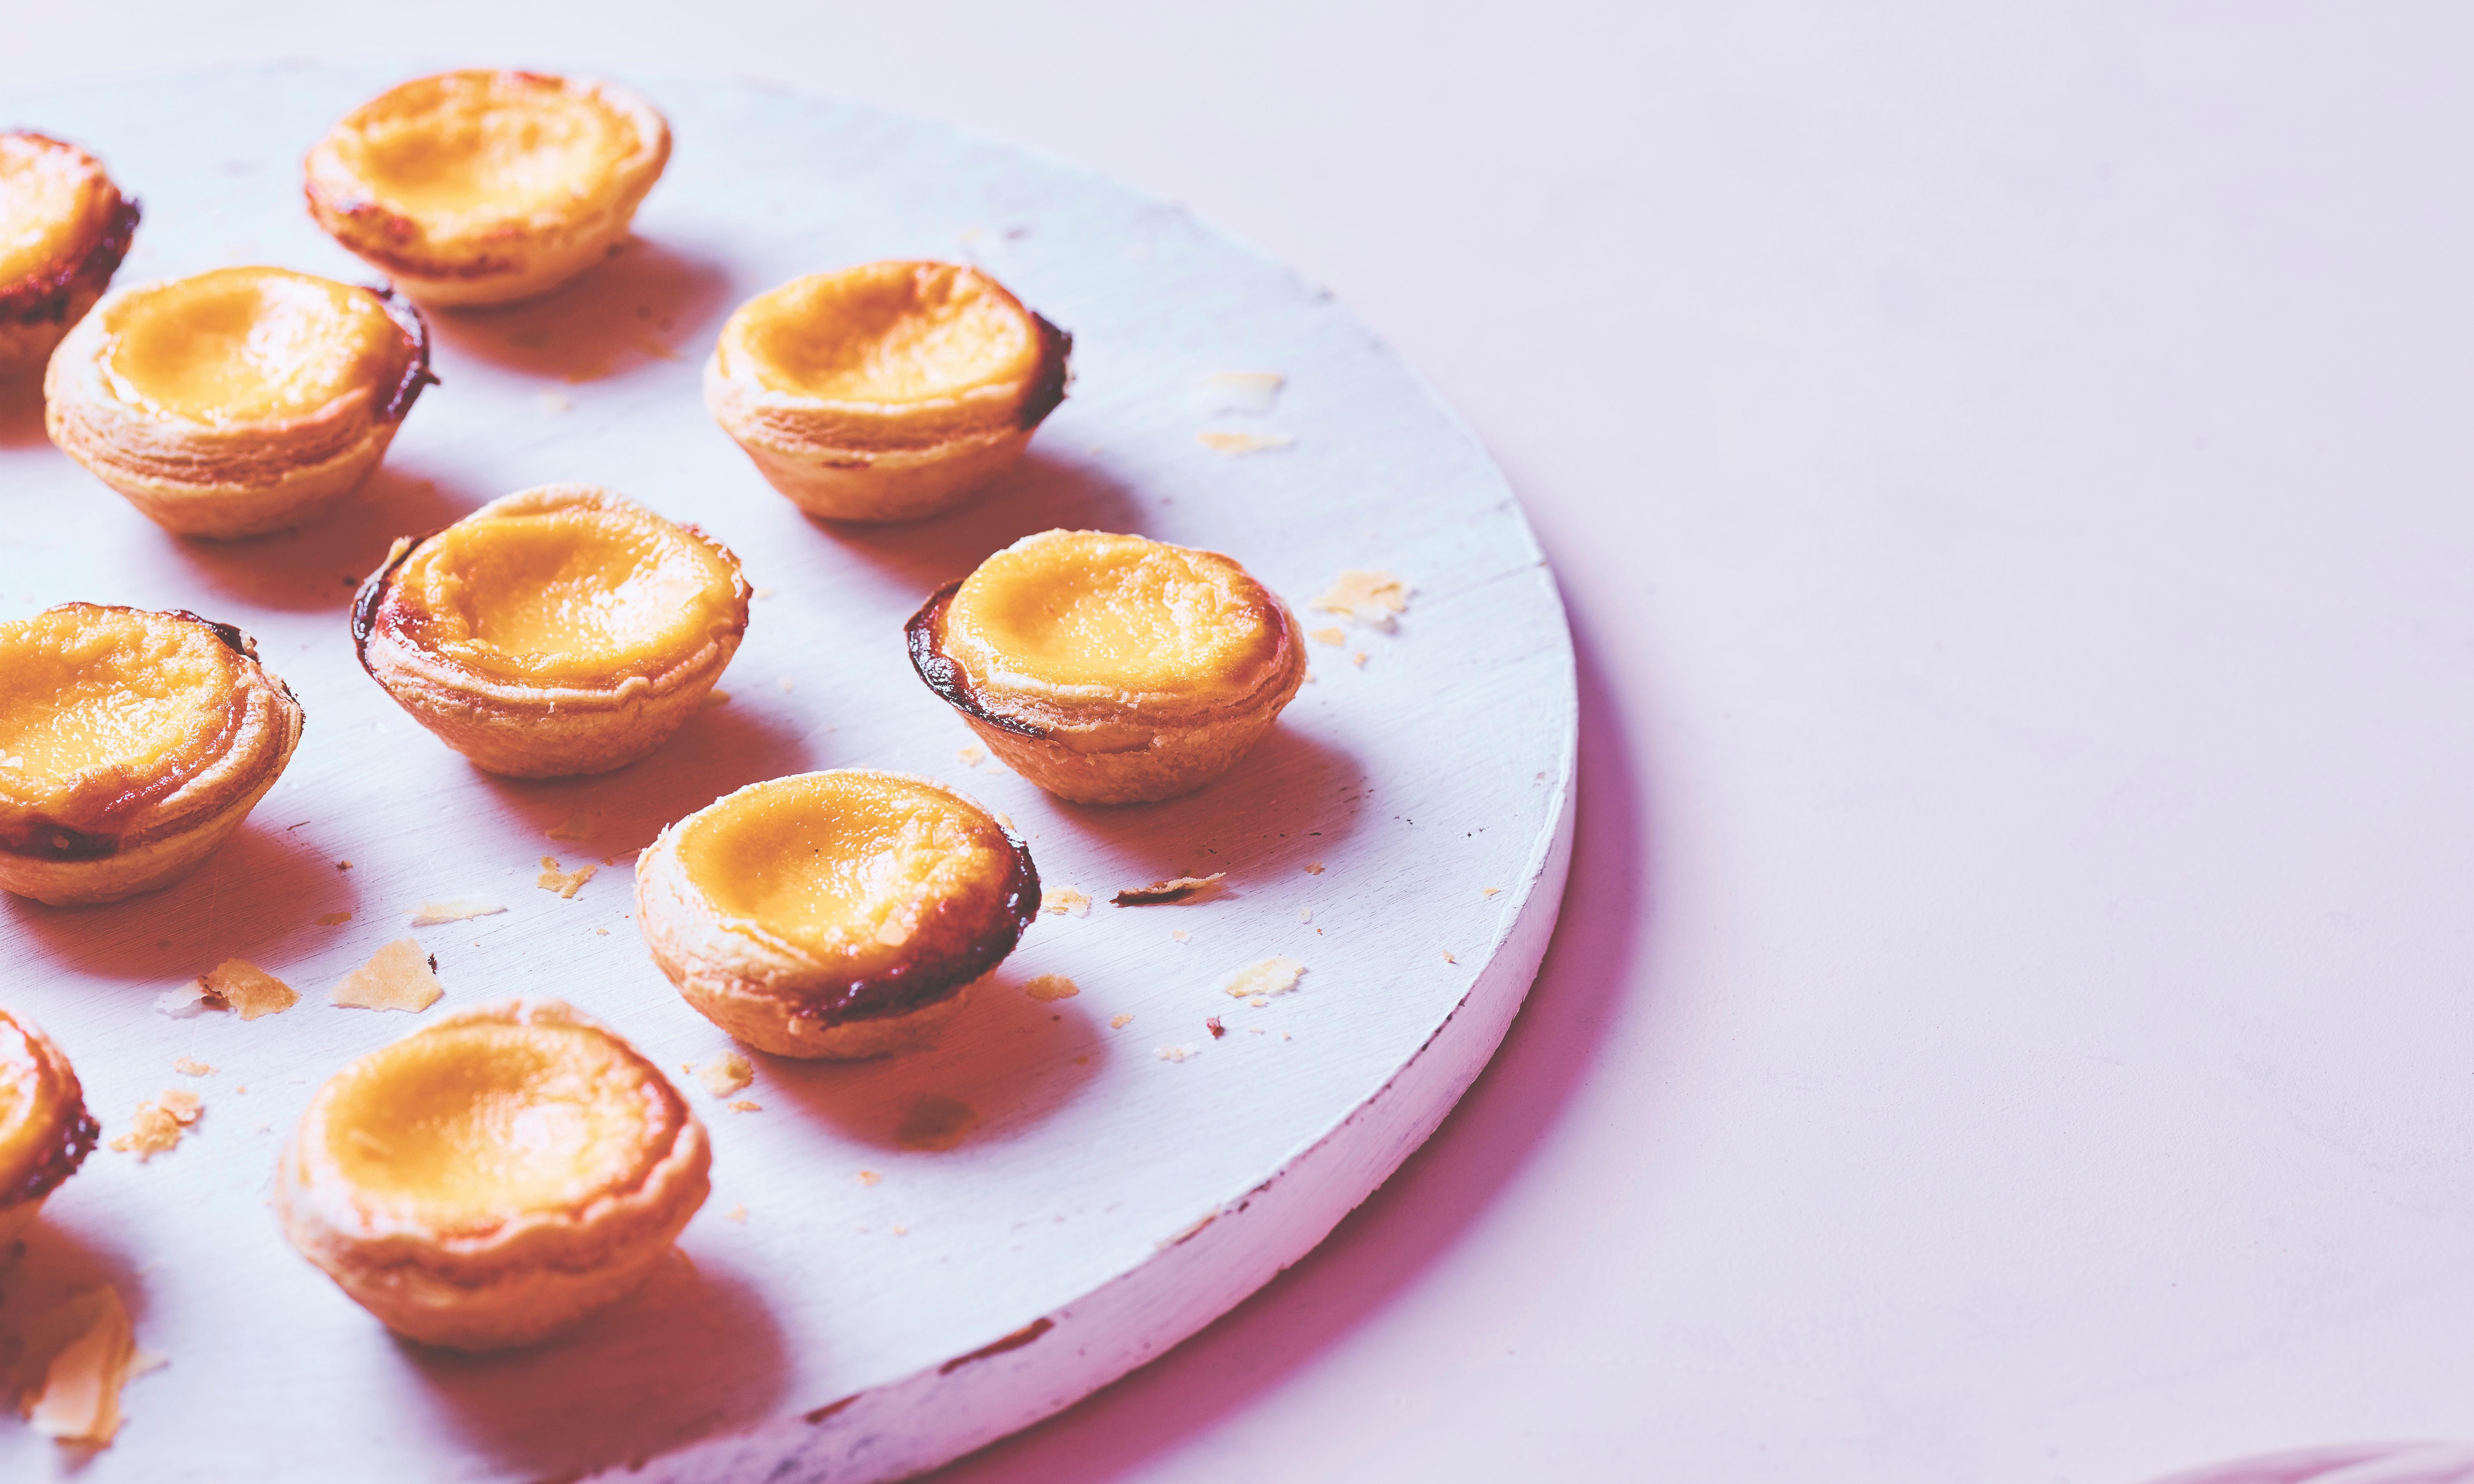 Matt Preston's Hong Kong custard tarts recipe